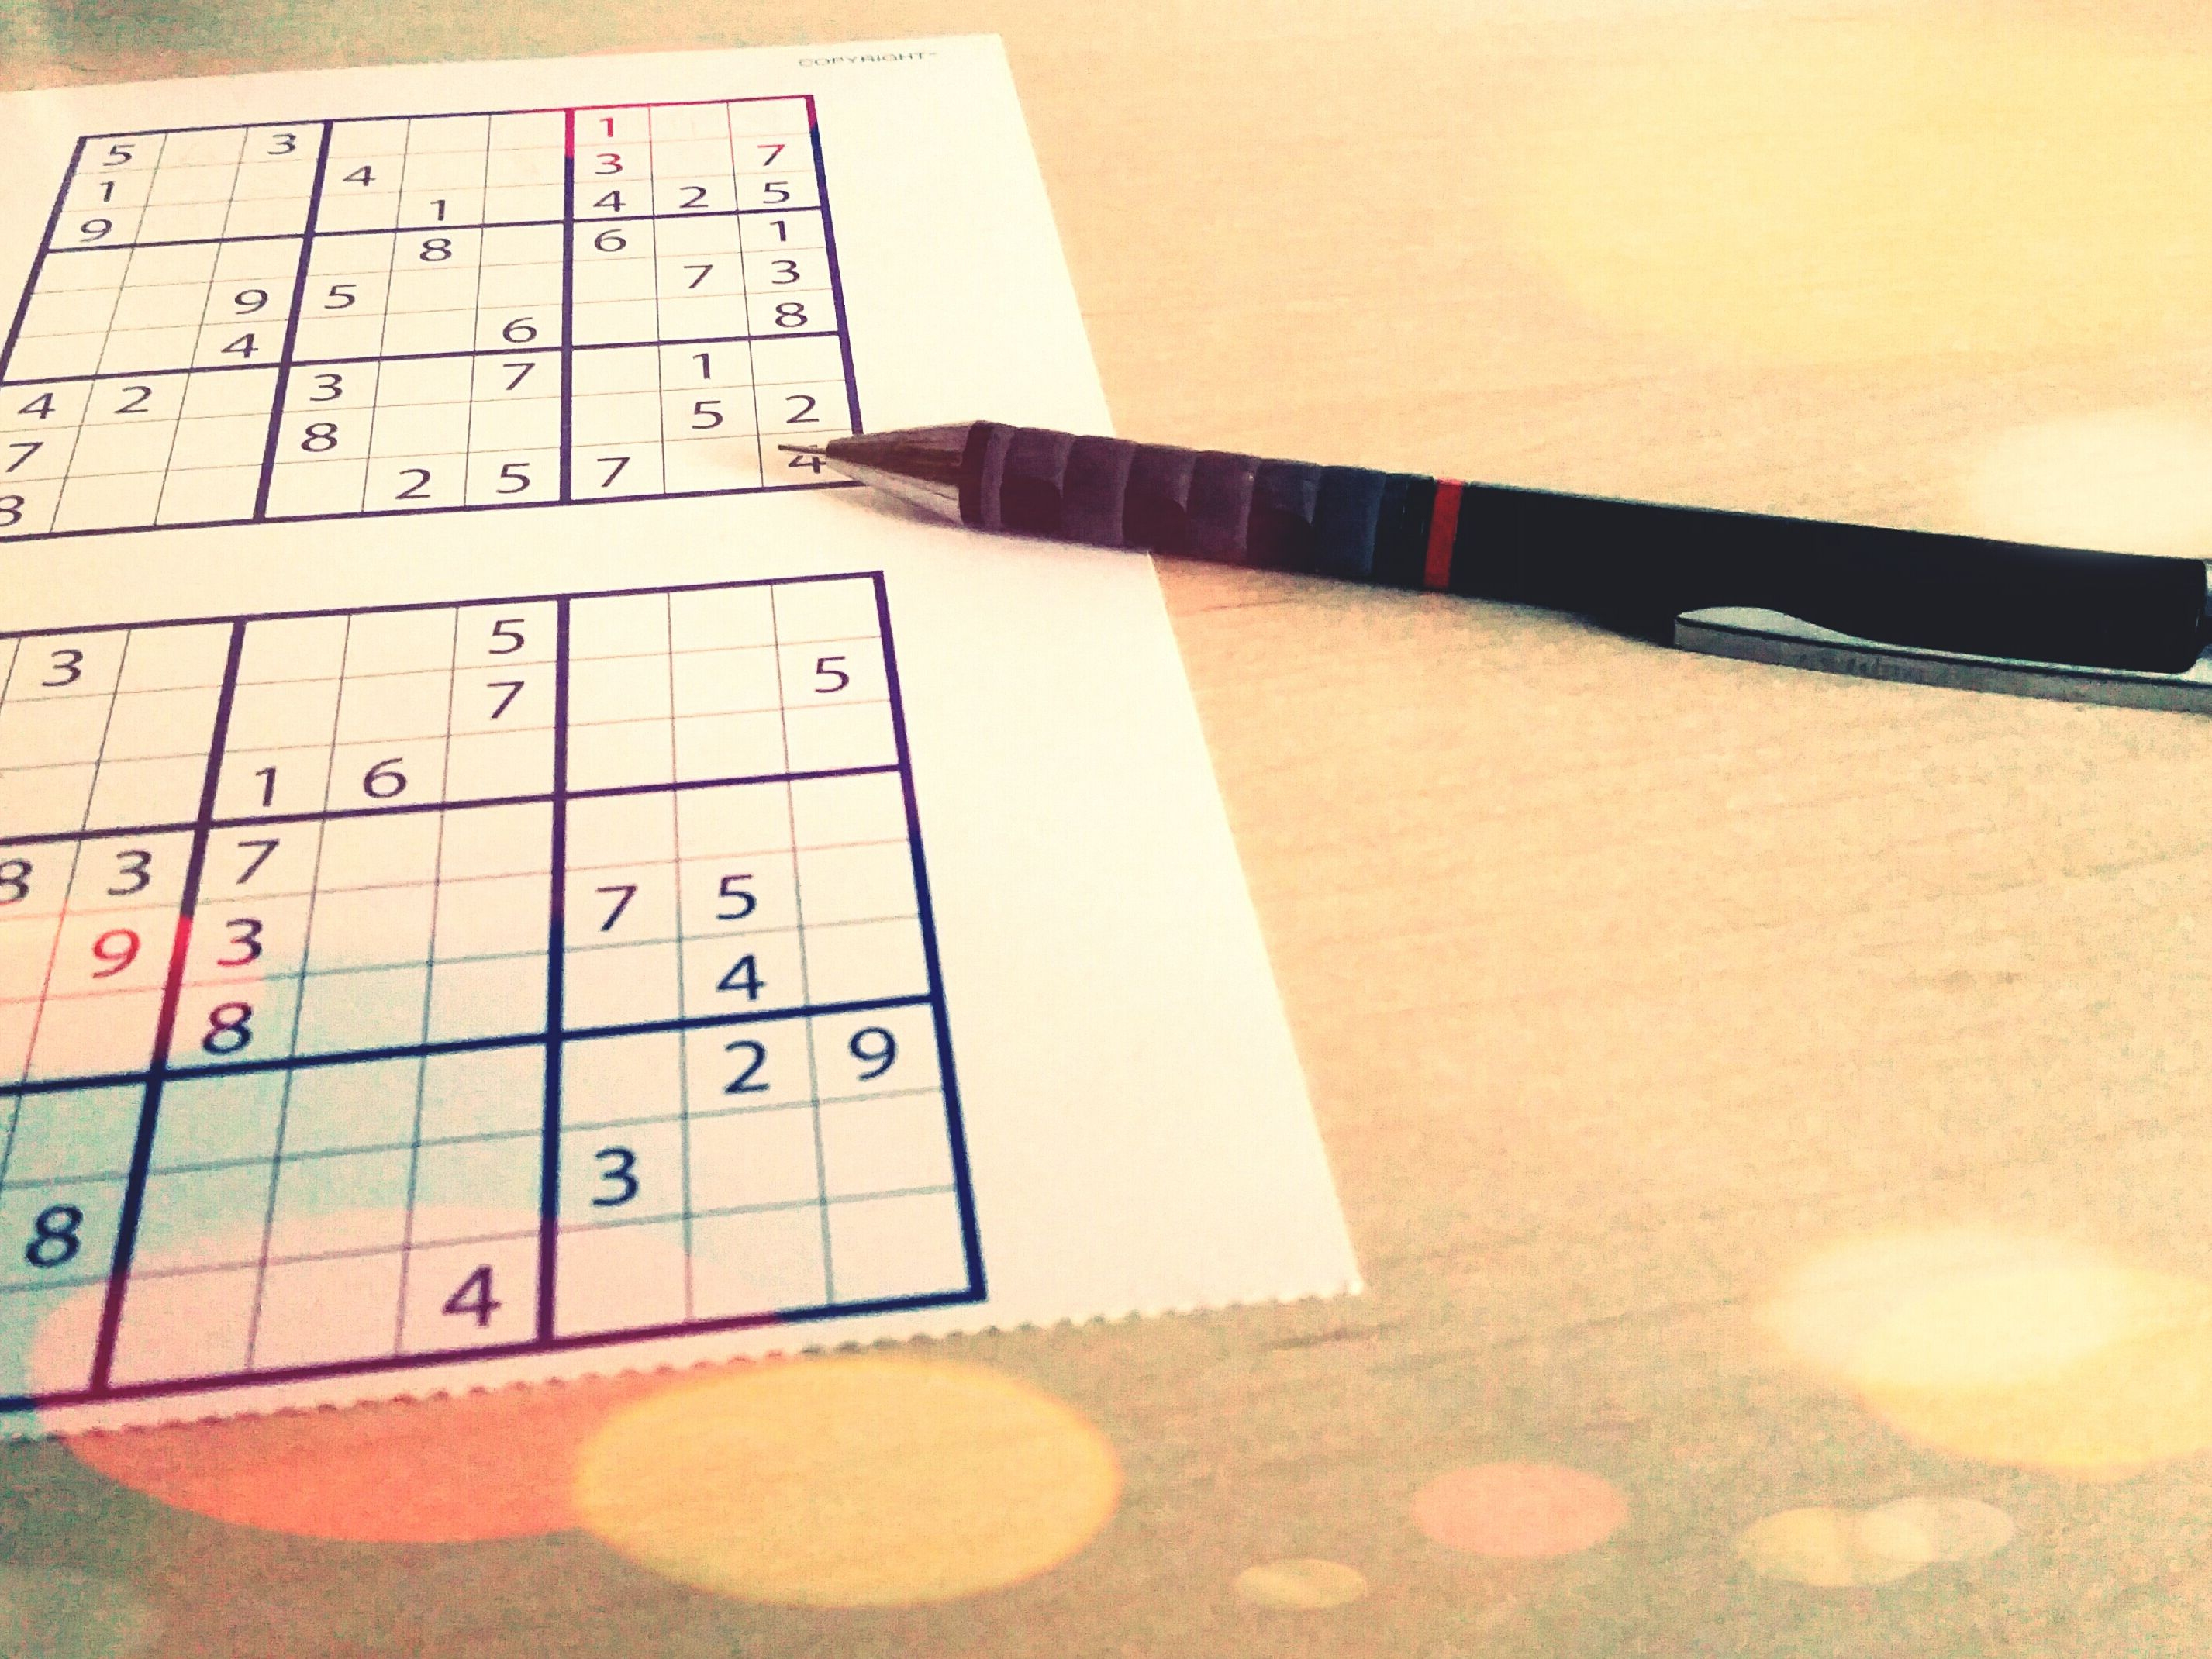 Free Printable Sudoku Puzzles For All Abilities - Free Printable Super Challenger Sudoku